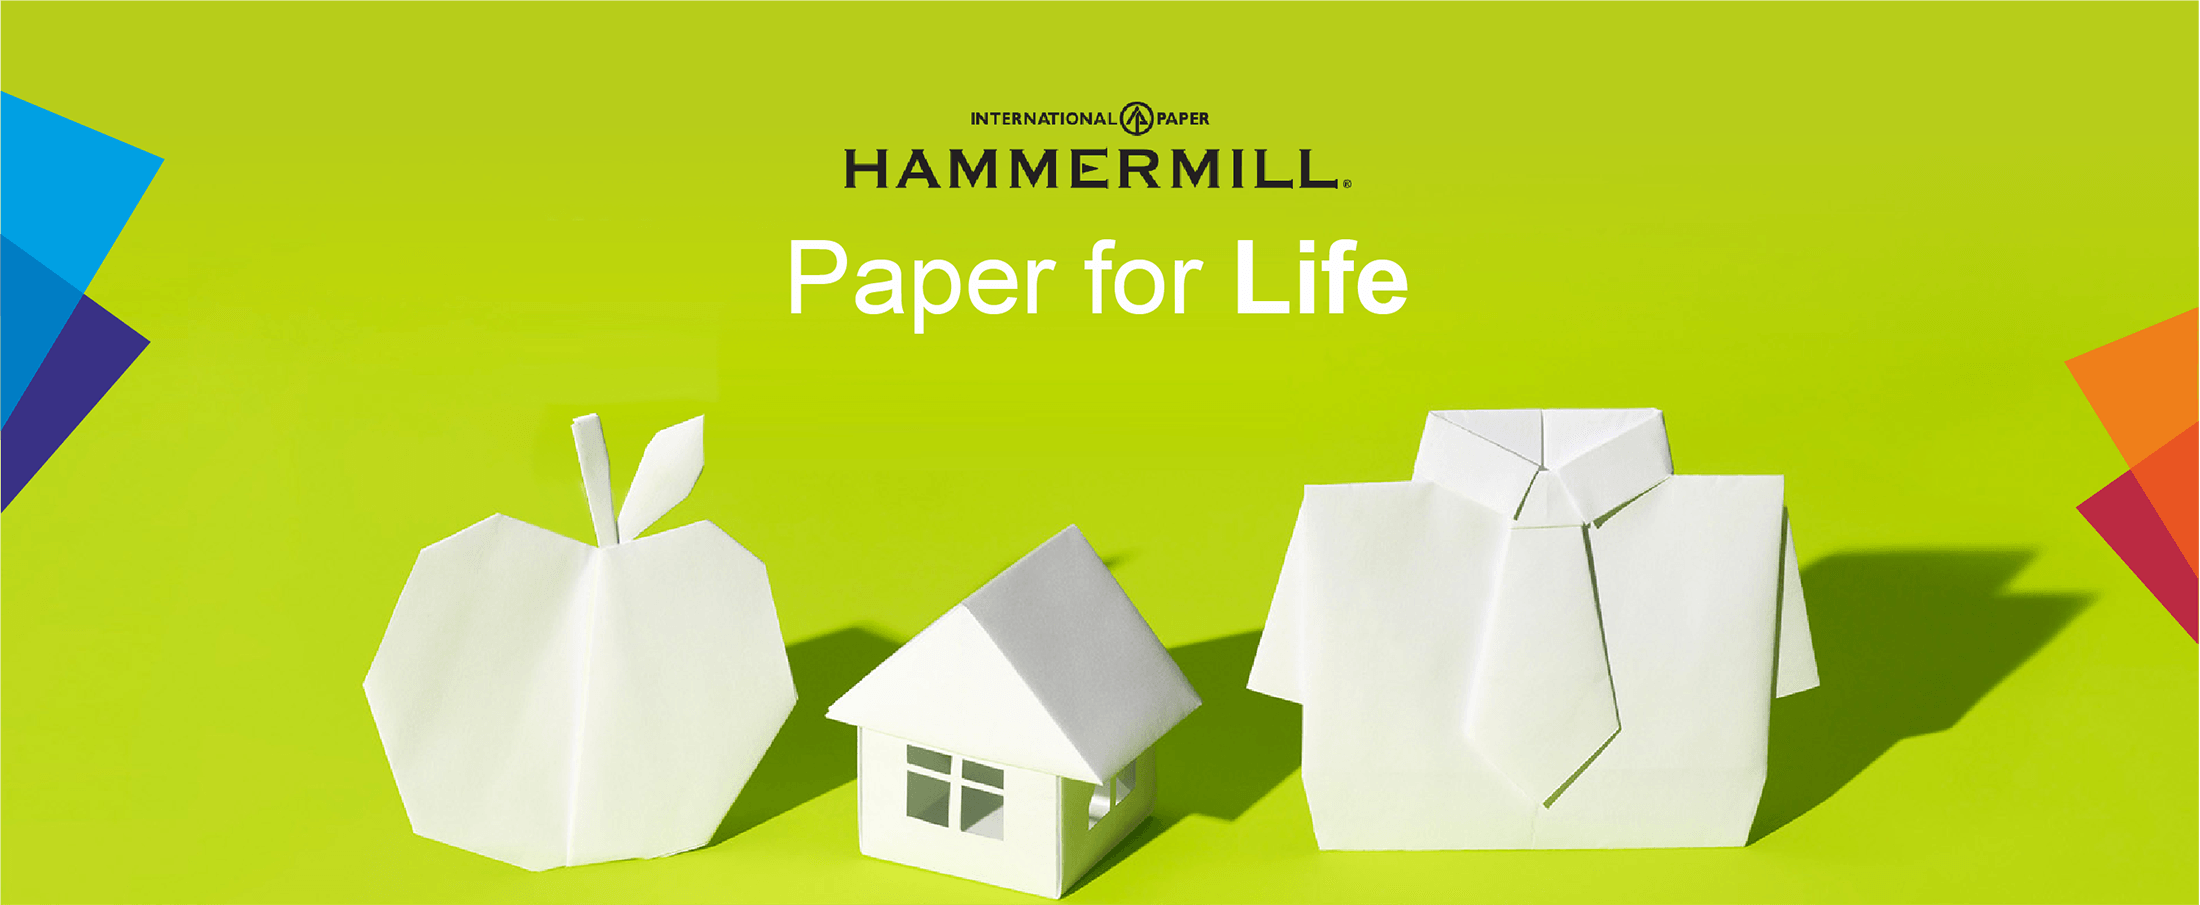 Hammermill, Paper for Life